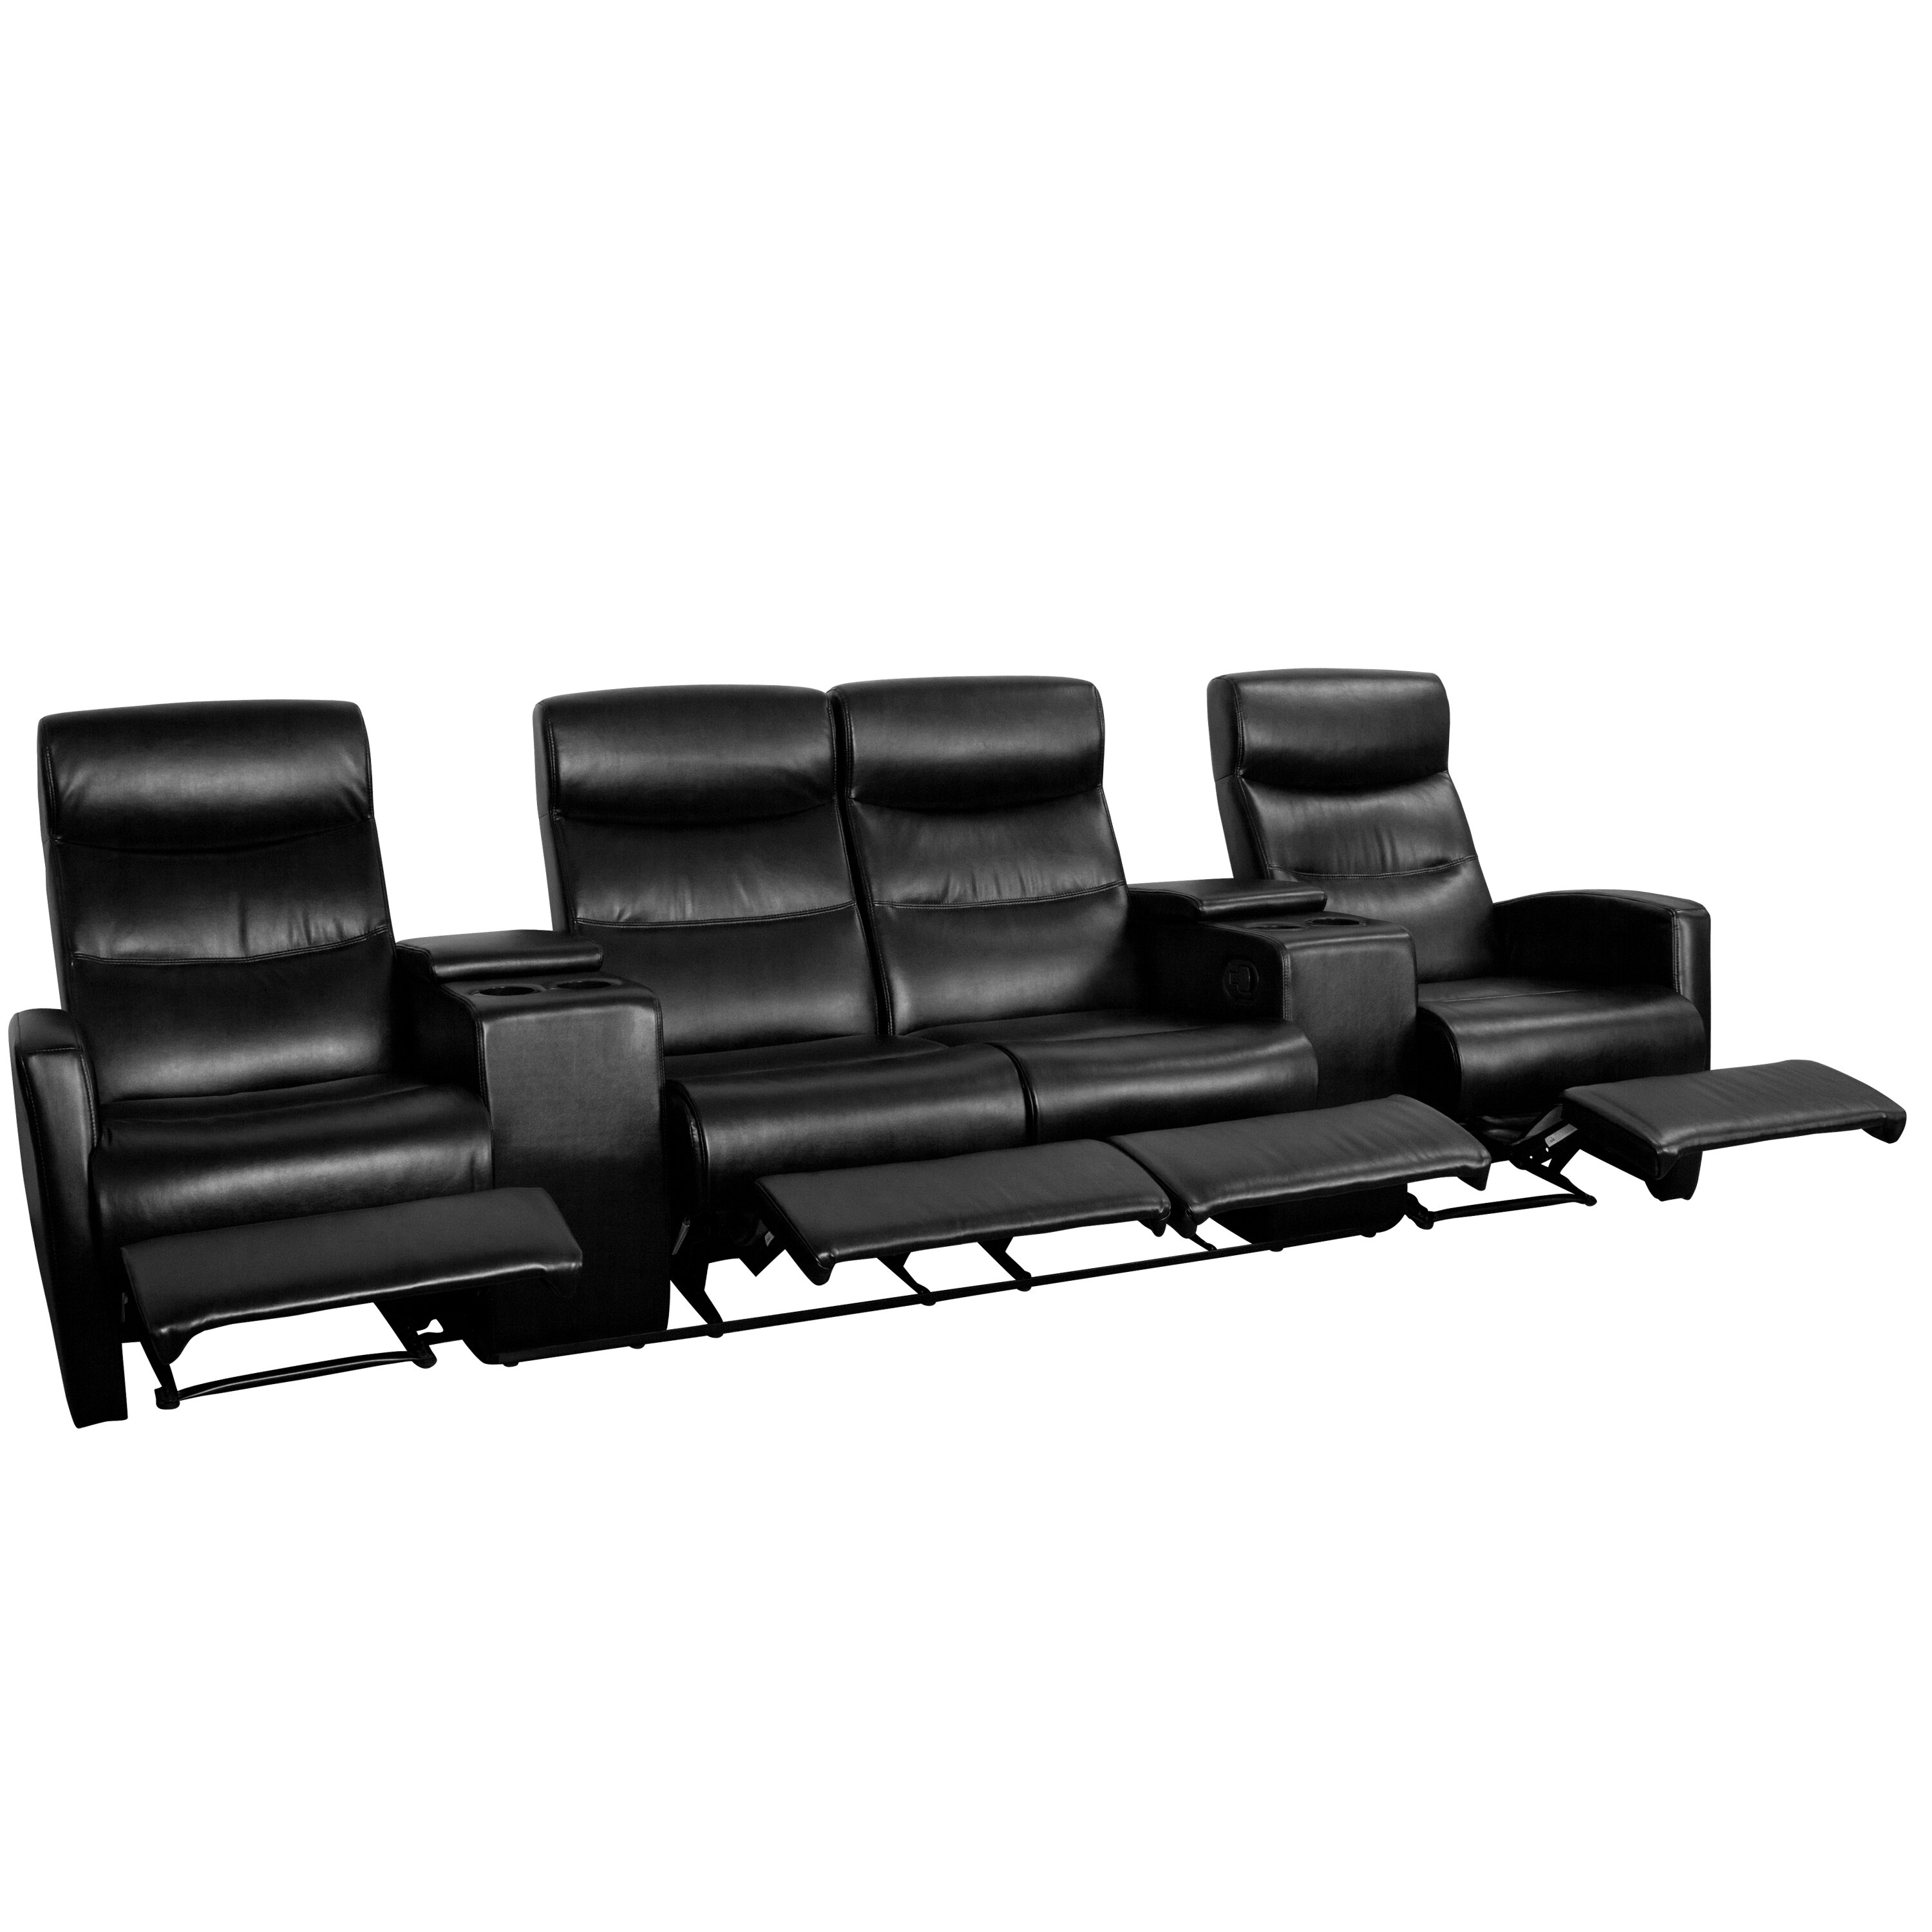 Flash furniture 4 seat home theater recliner reviews for Furniture 4 your home